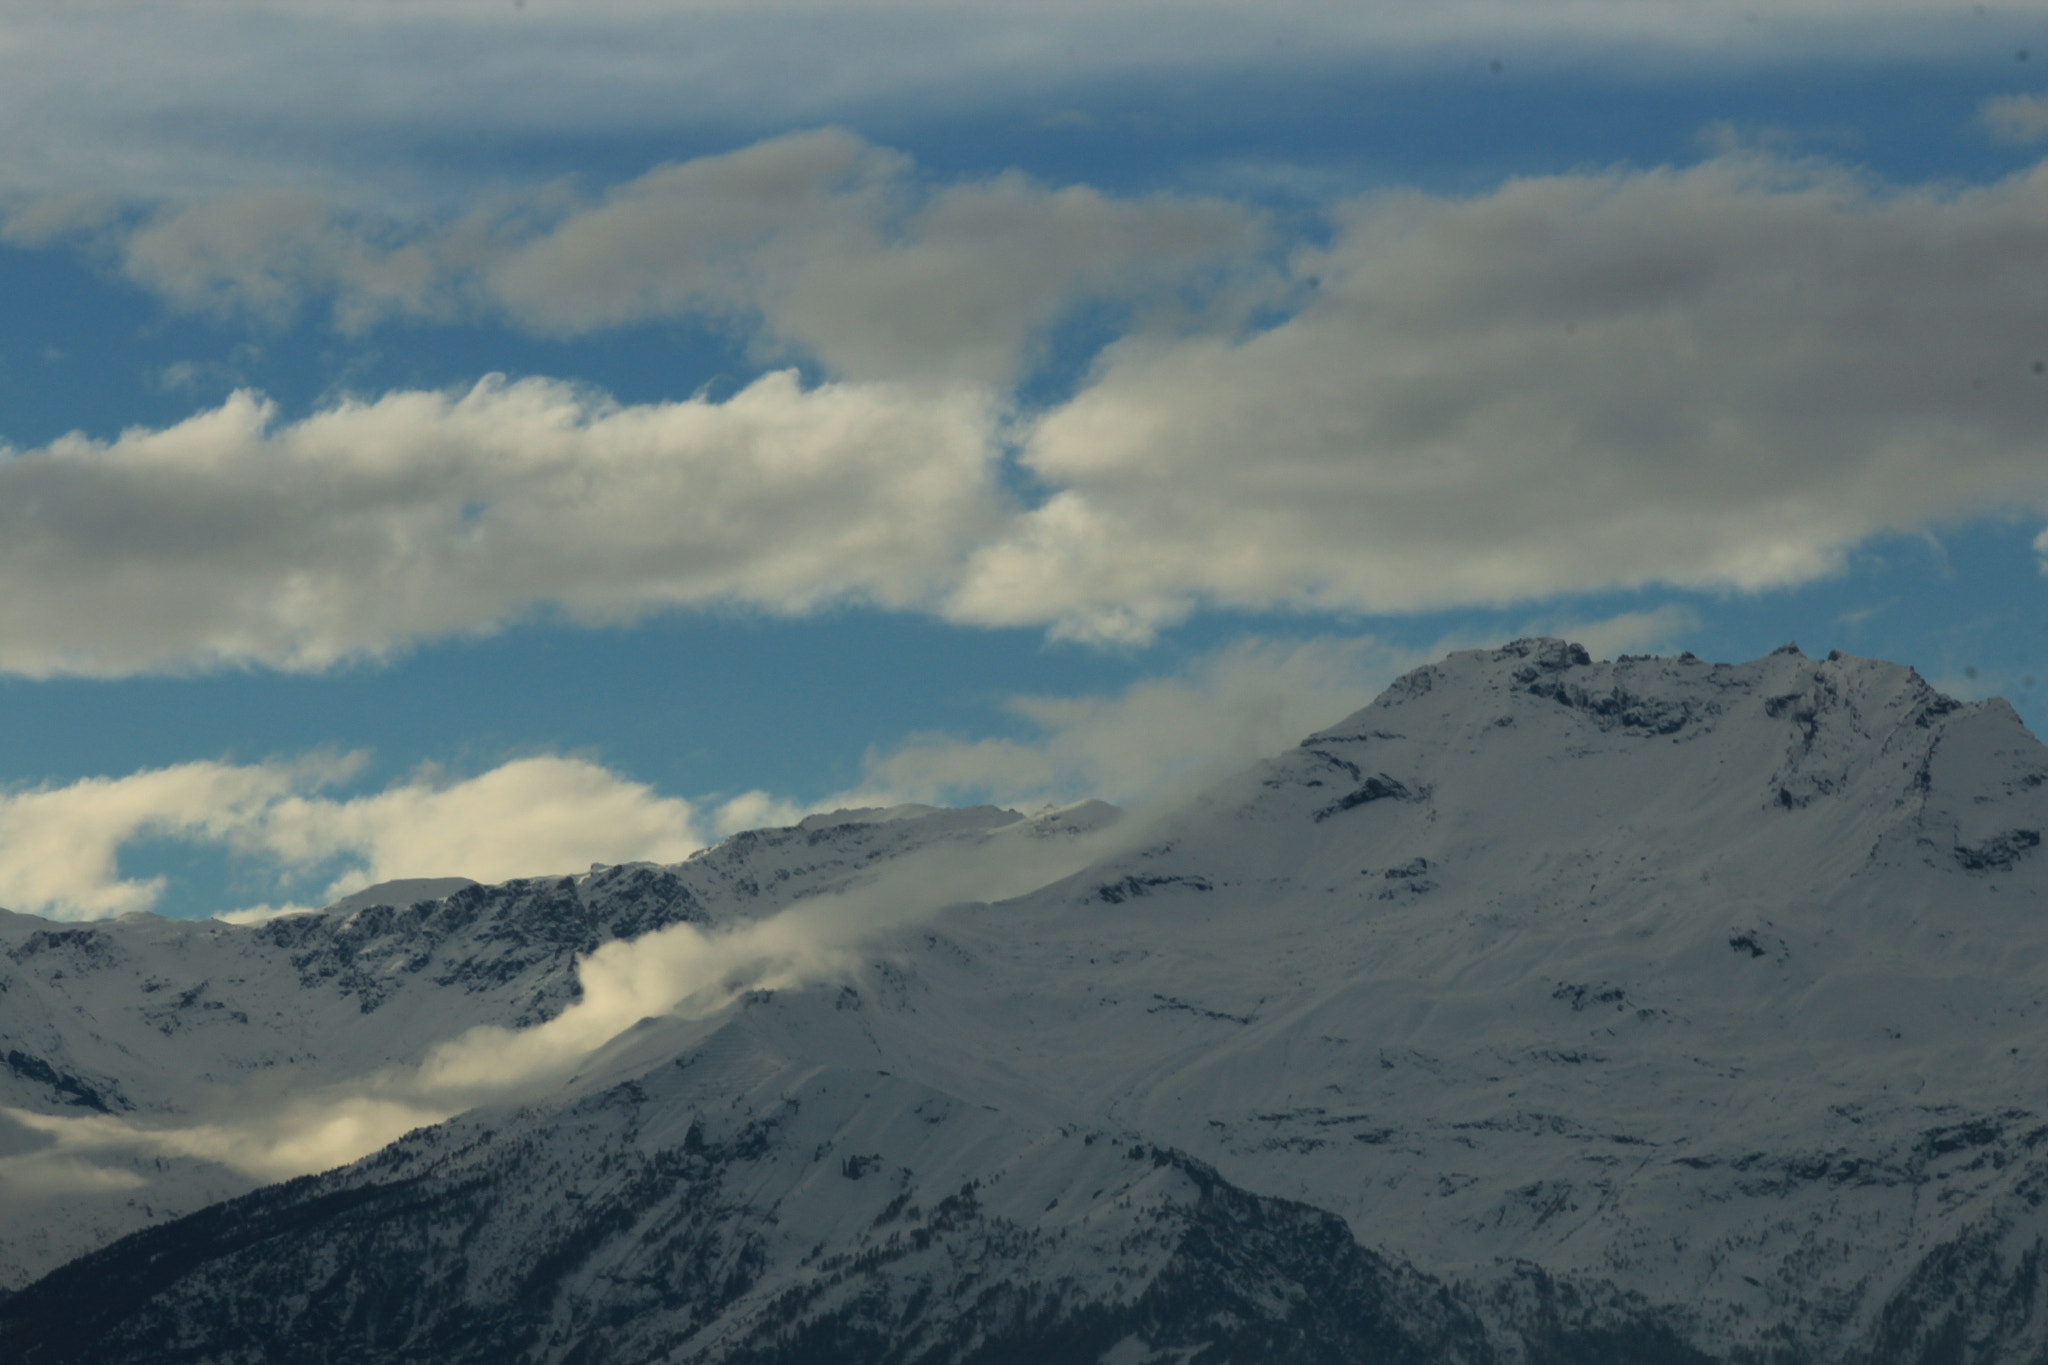 Photograph clouds and snow by Paola Fiore on 500px